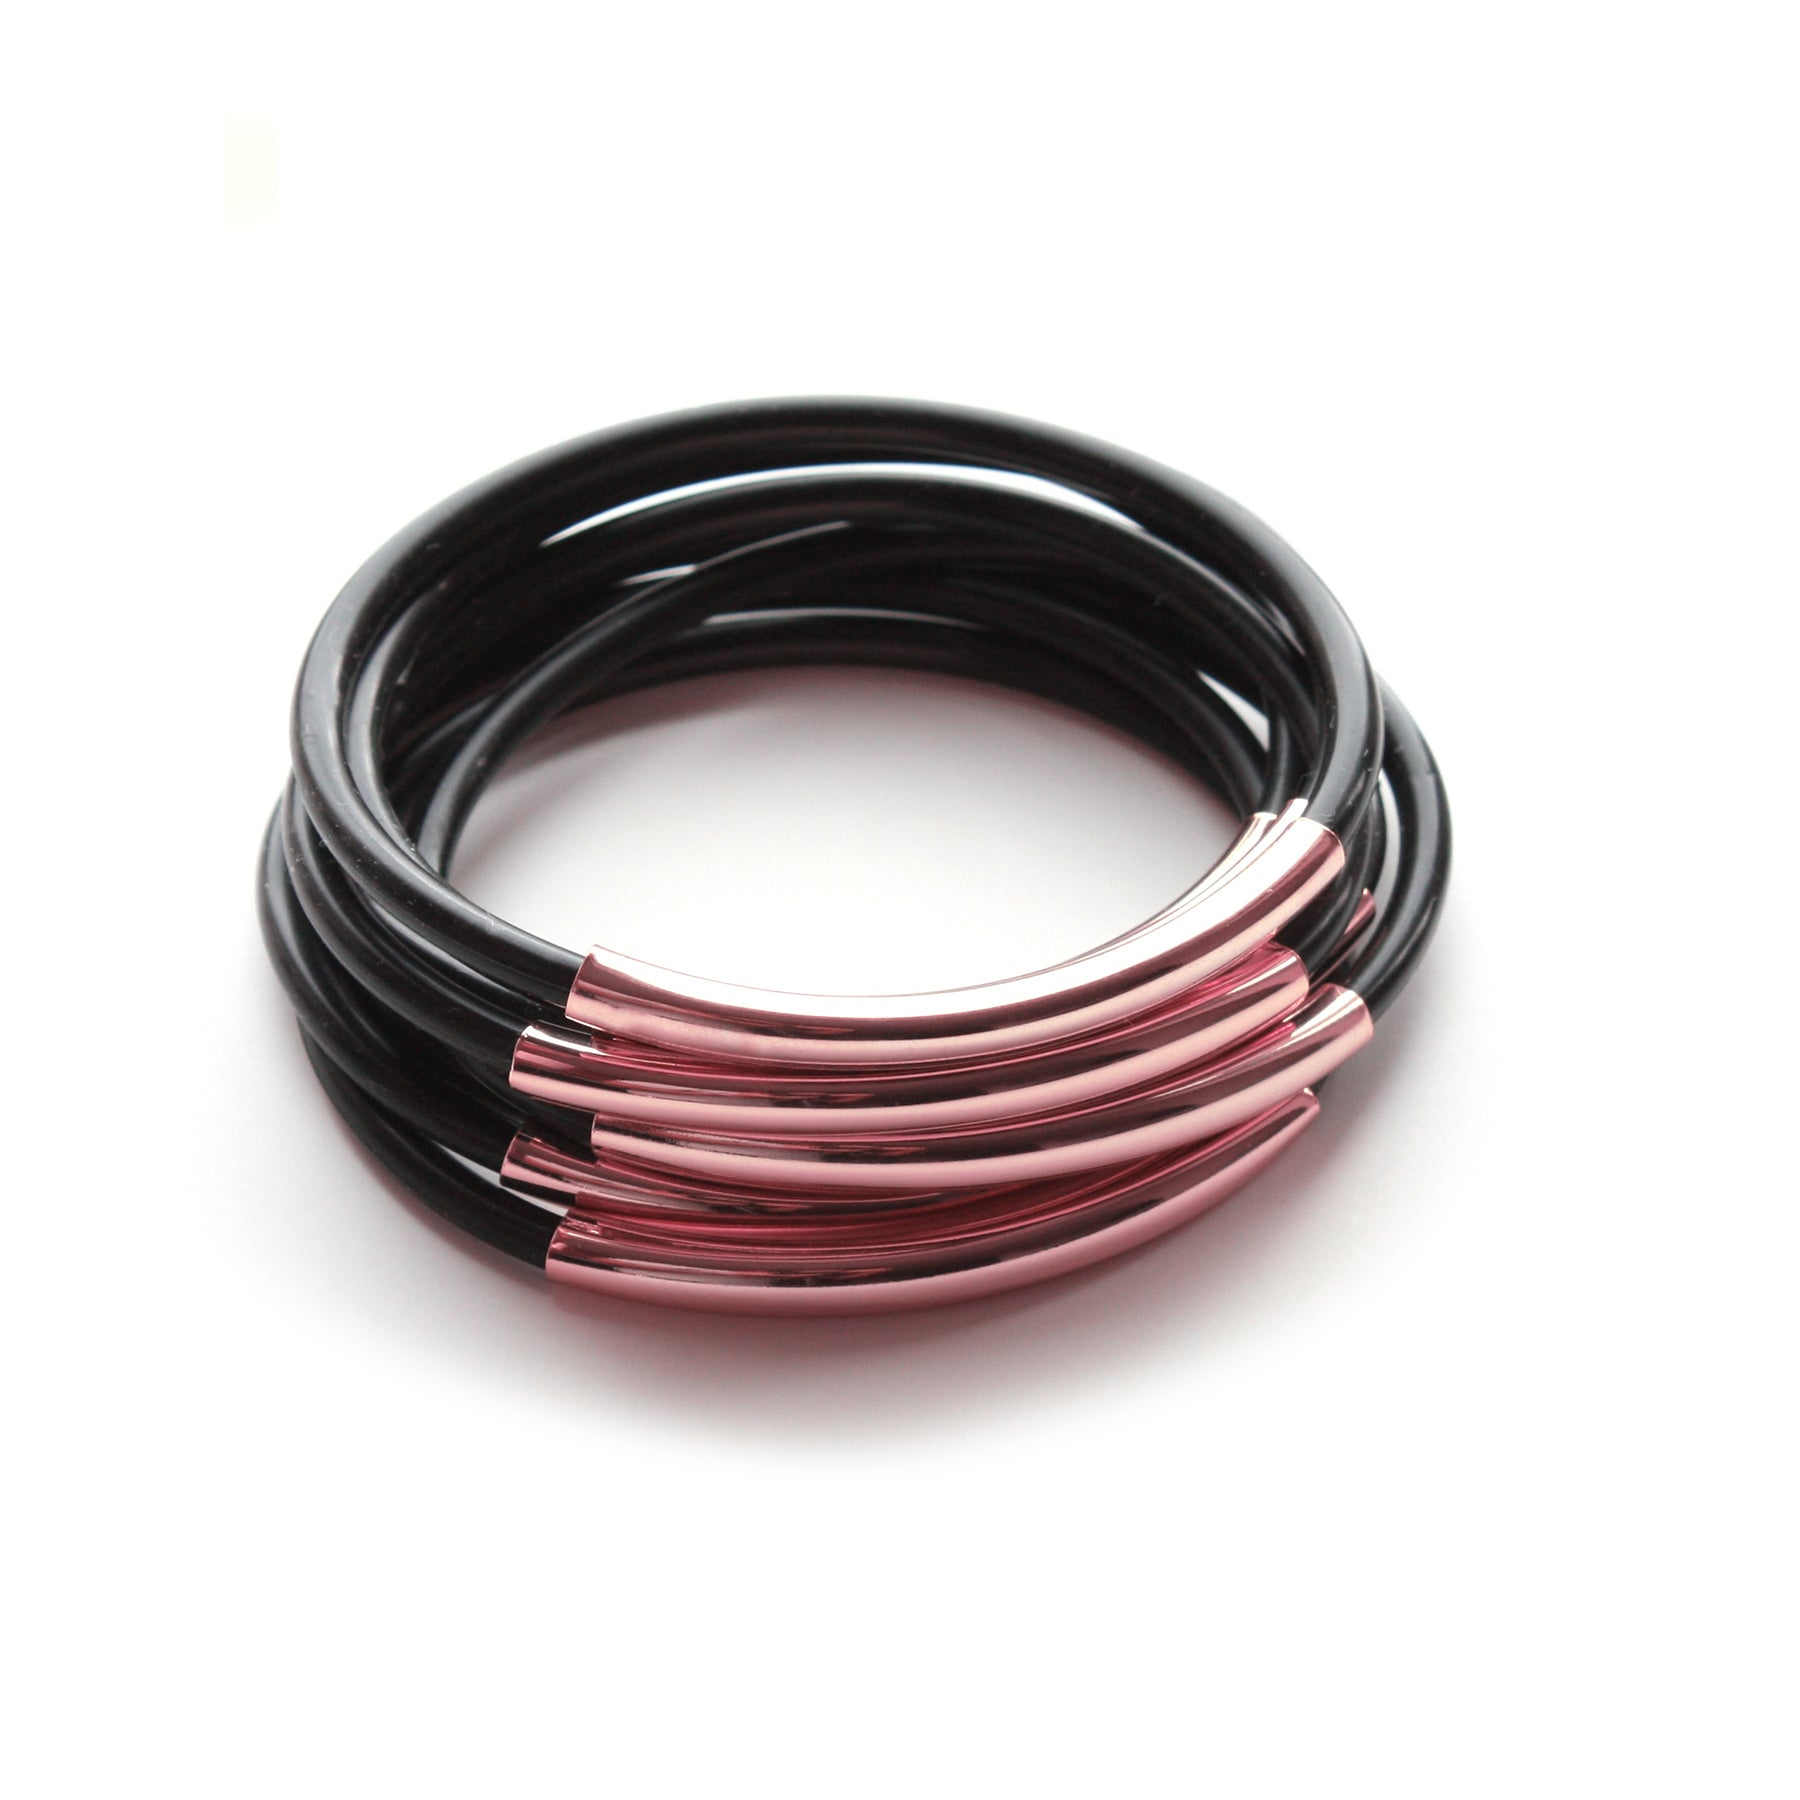 TUBE JELLIES BRACELET STACK IN BLACK WITH ROSE GOLD